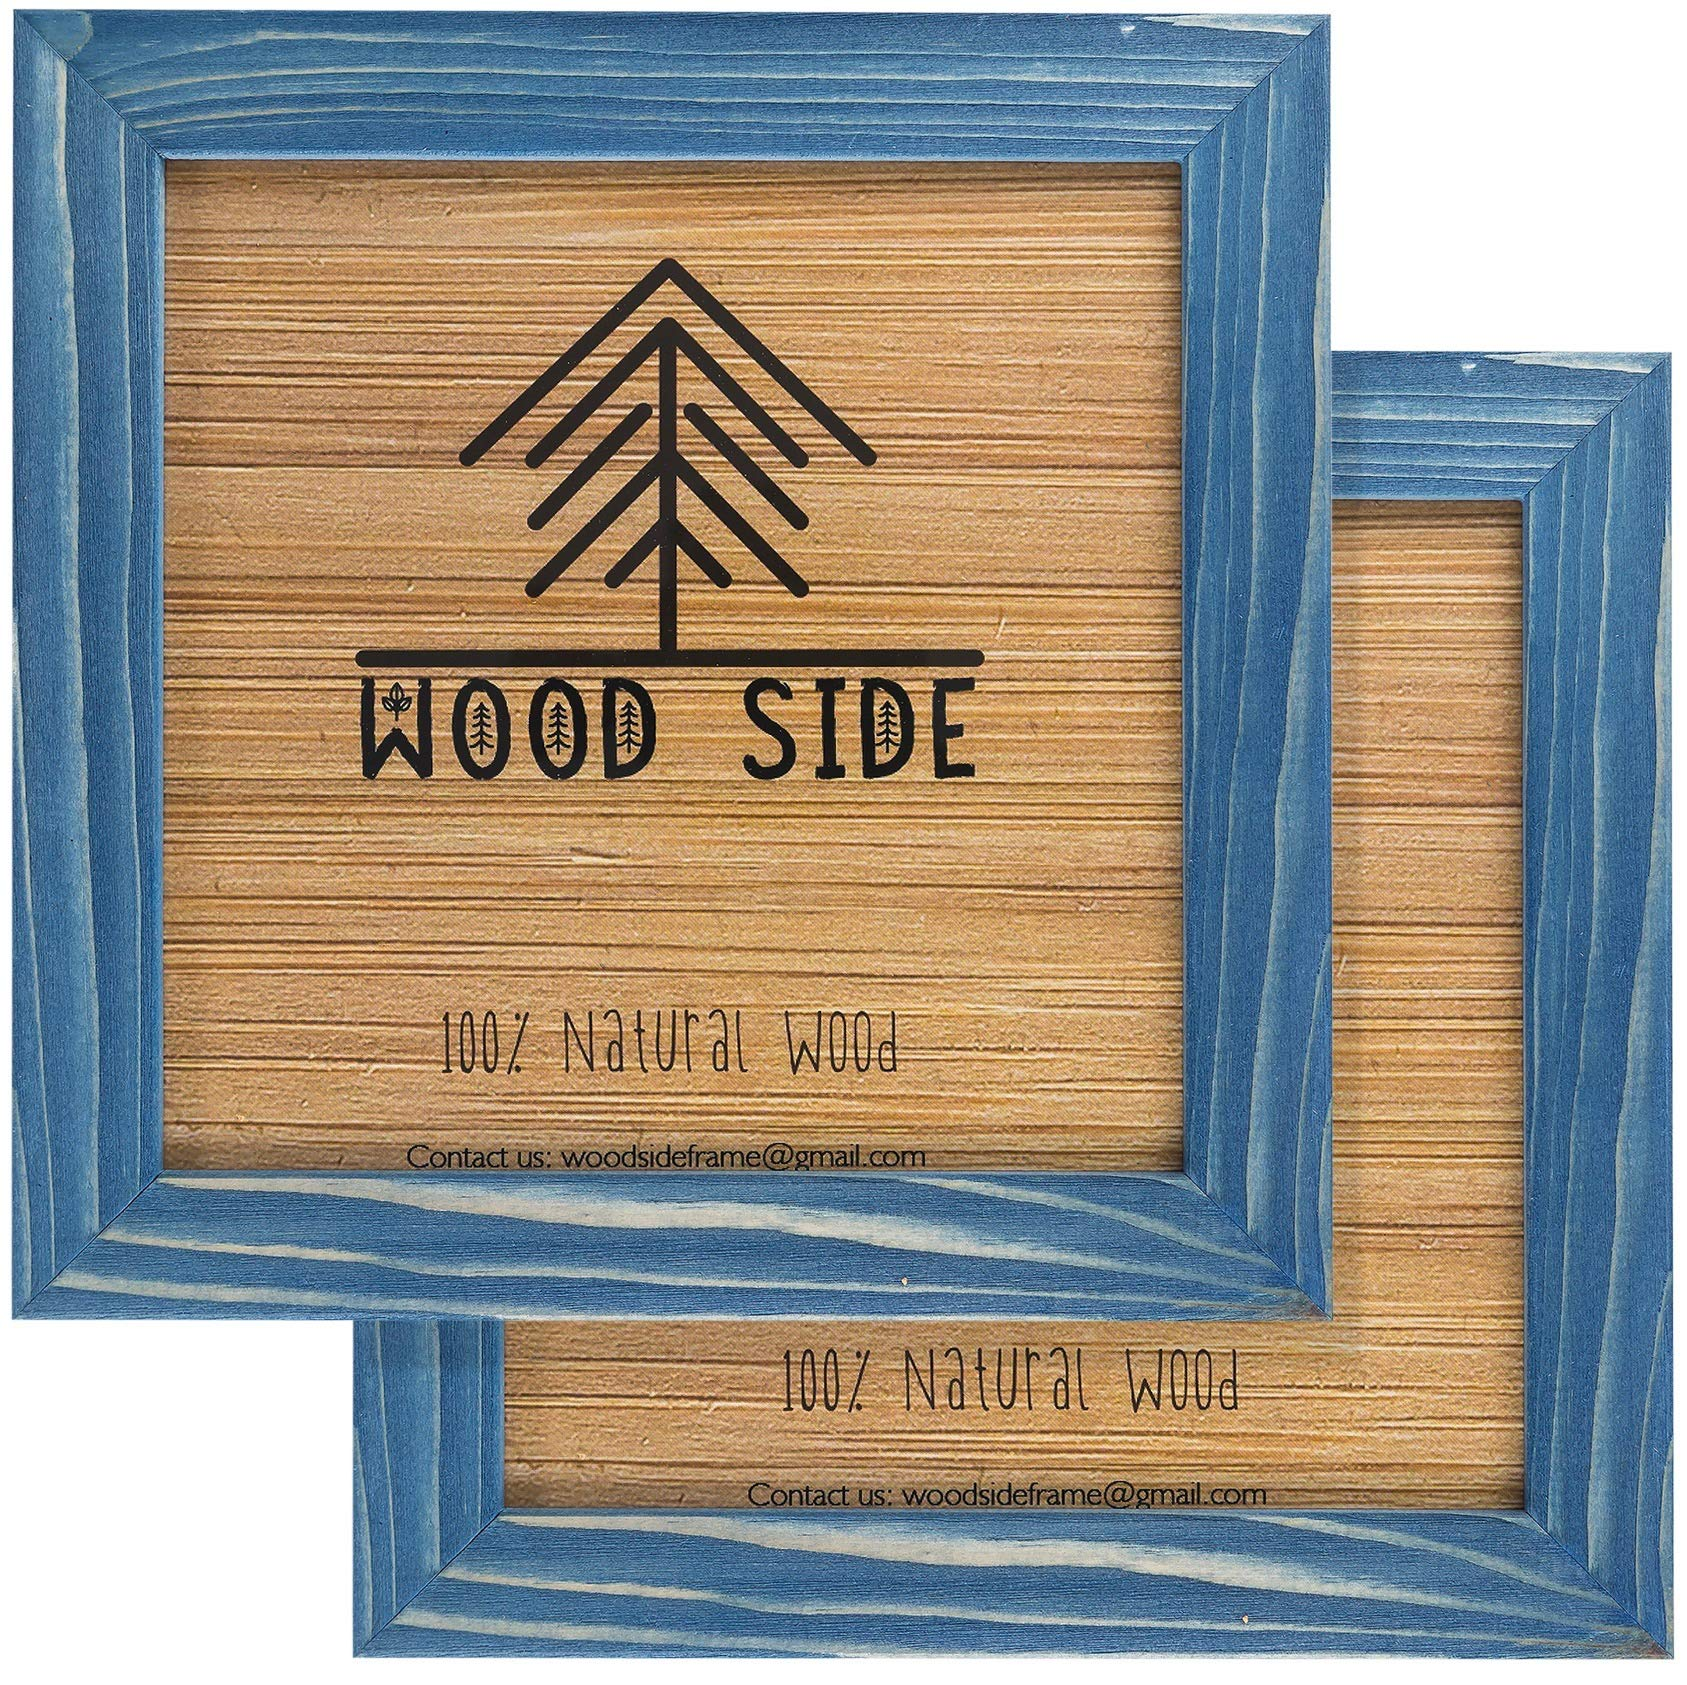 Rustic Wooden Square Picture Frames 8x8 - Set of 2-100% Natural Farmhouse Washed Barn Wood with Real Glass for Wall Mounting Photo Frame - Navy Blue by Wood Side